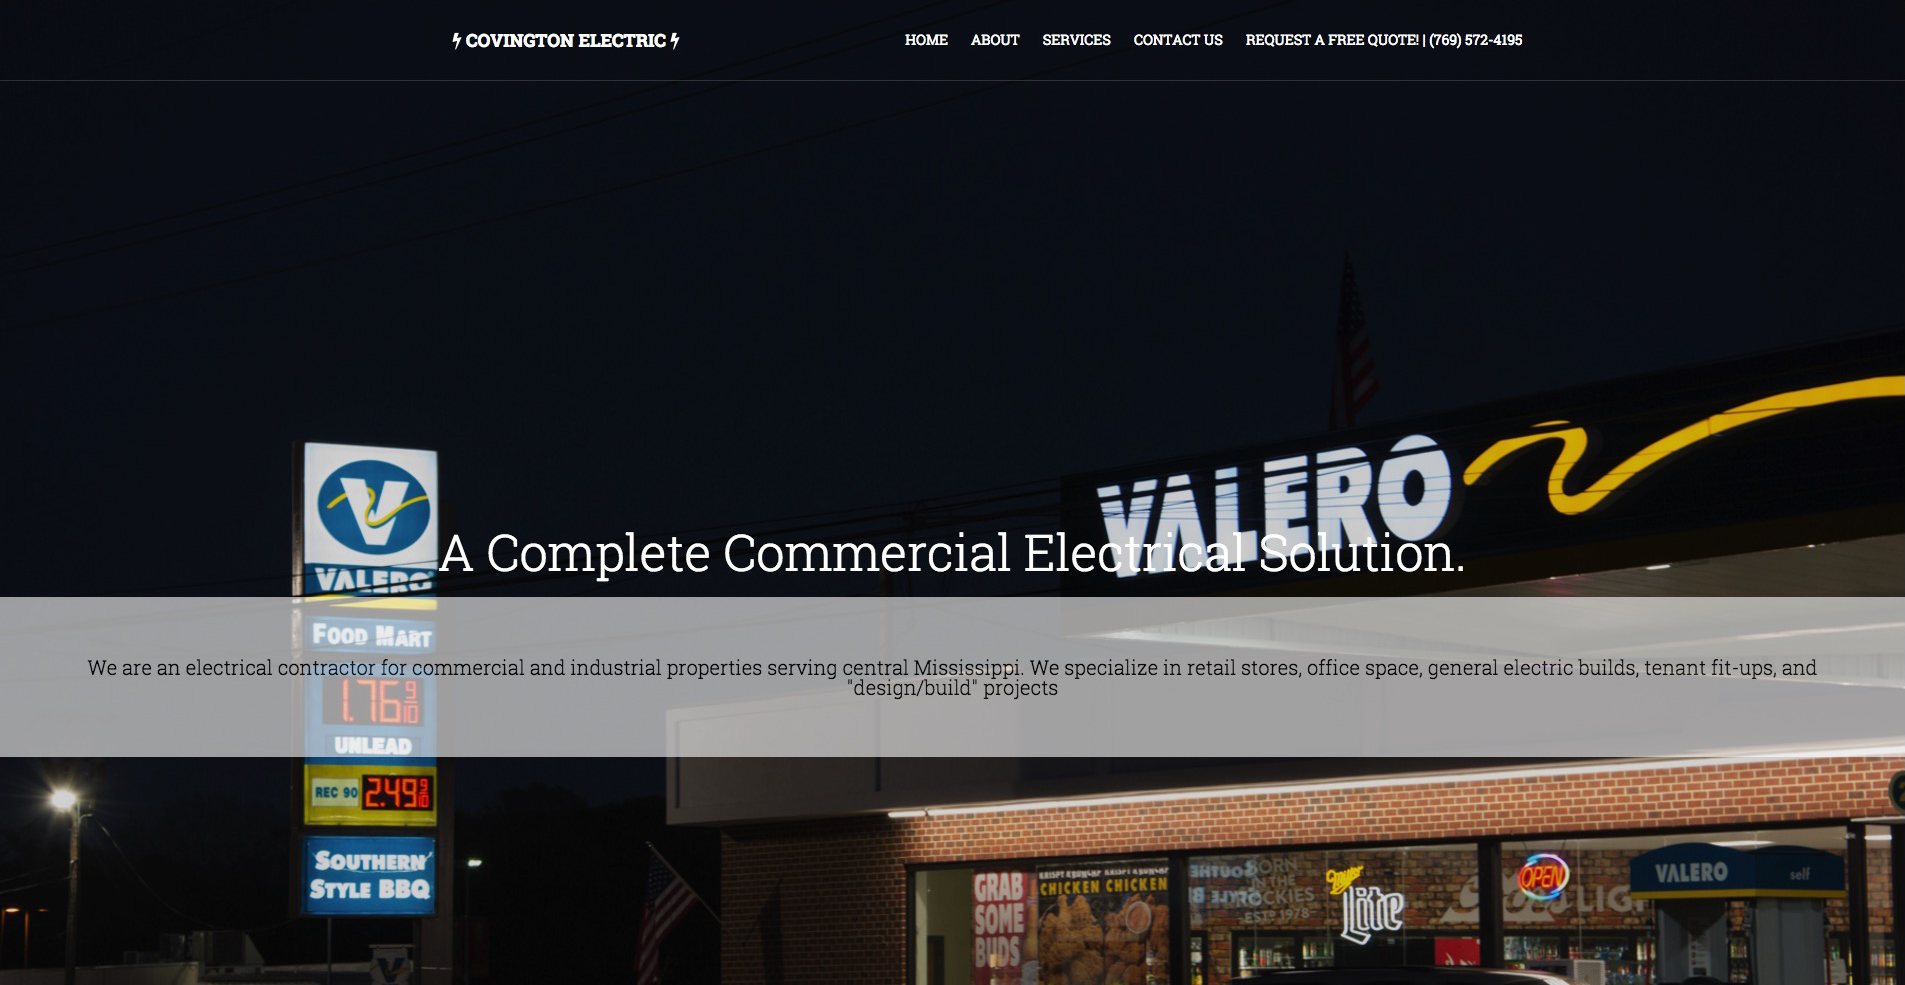 A Website for Covington Electric, LLC in Brandon, MS